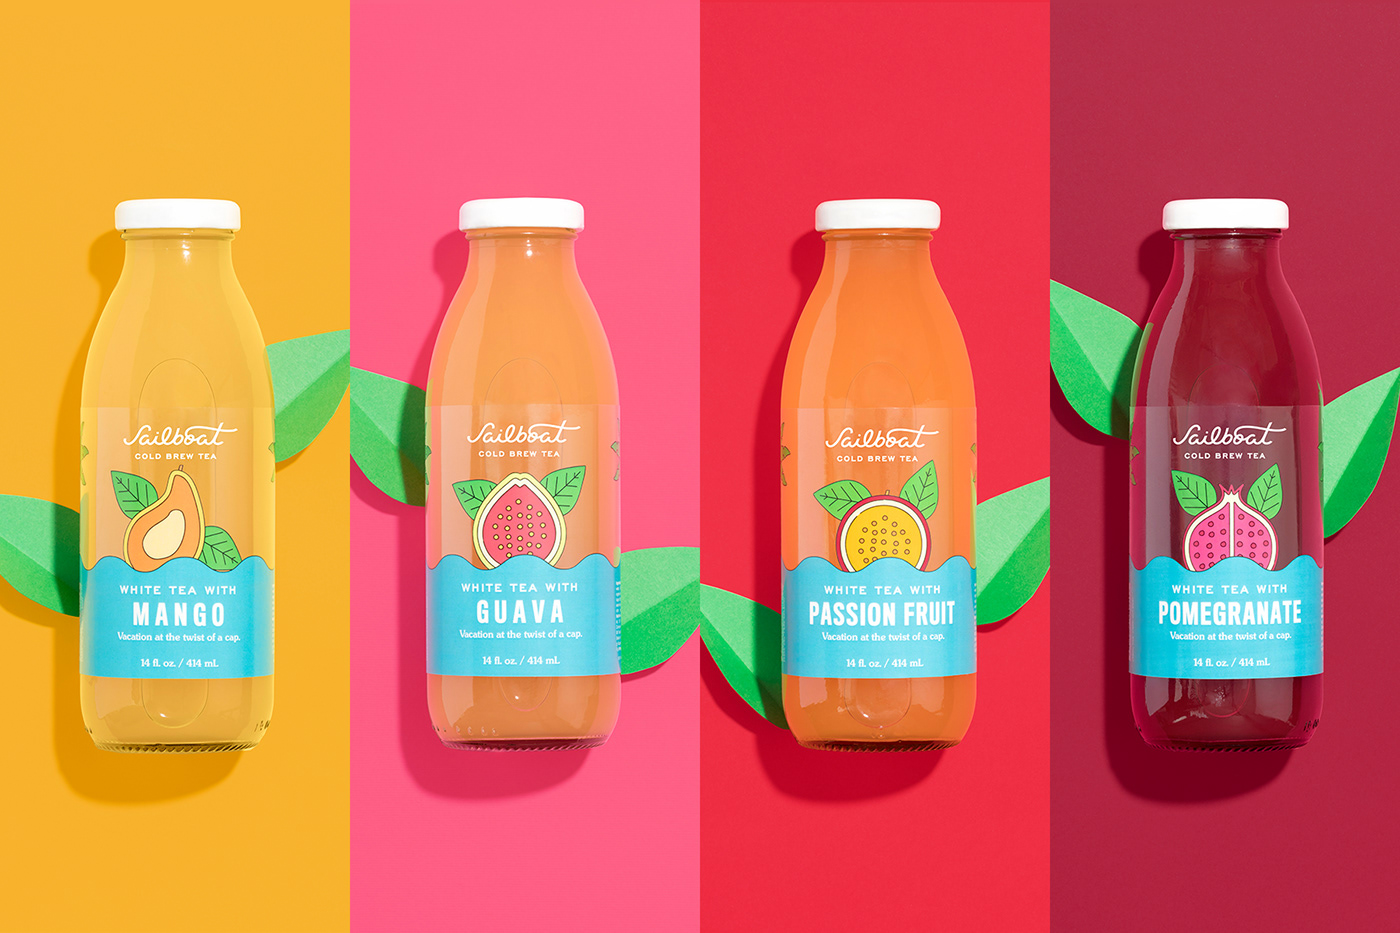 beach brand identity branding  Cold Brew colors design fruits tea Tropical vacation